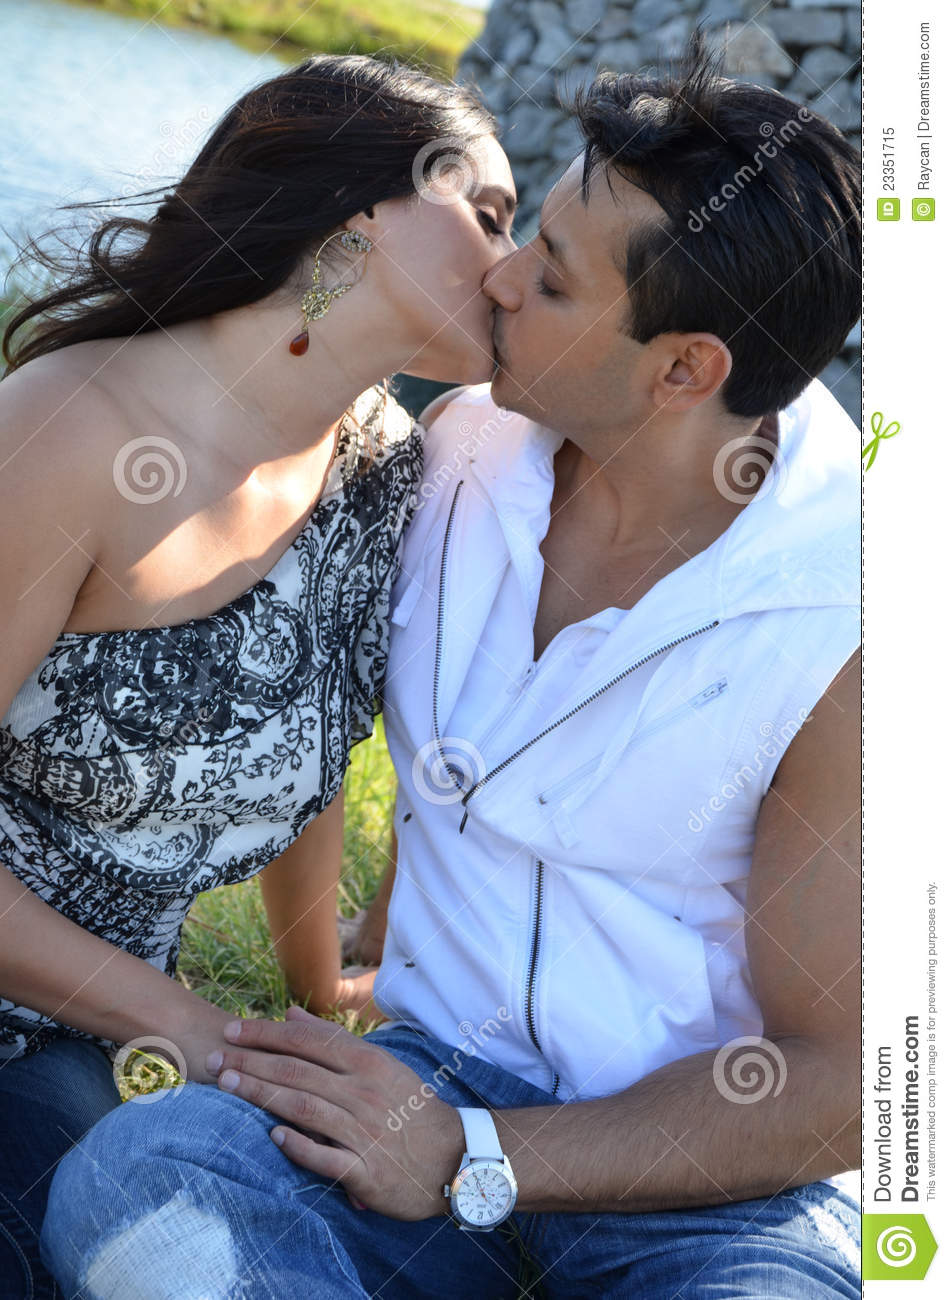 Images Of Kissing Couple Royalty Free Stock Image